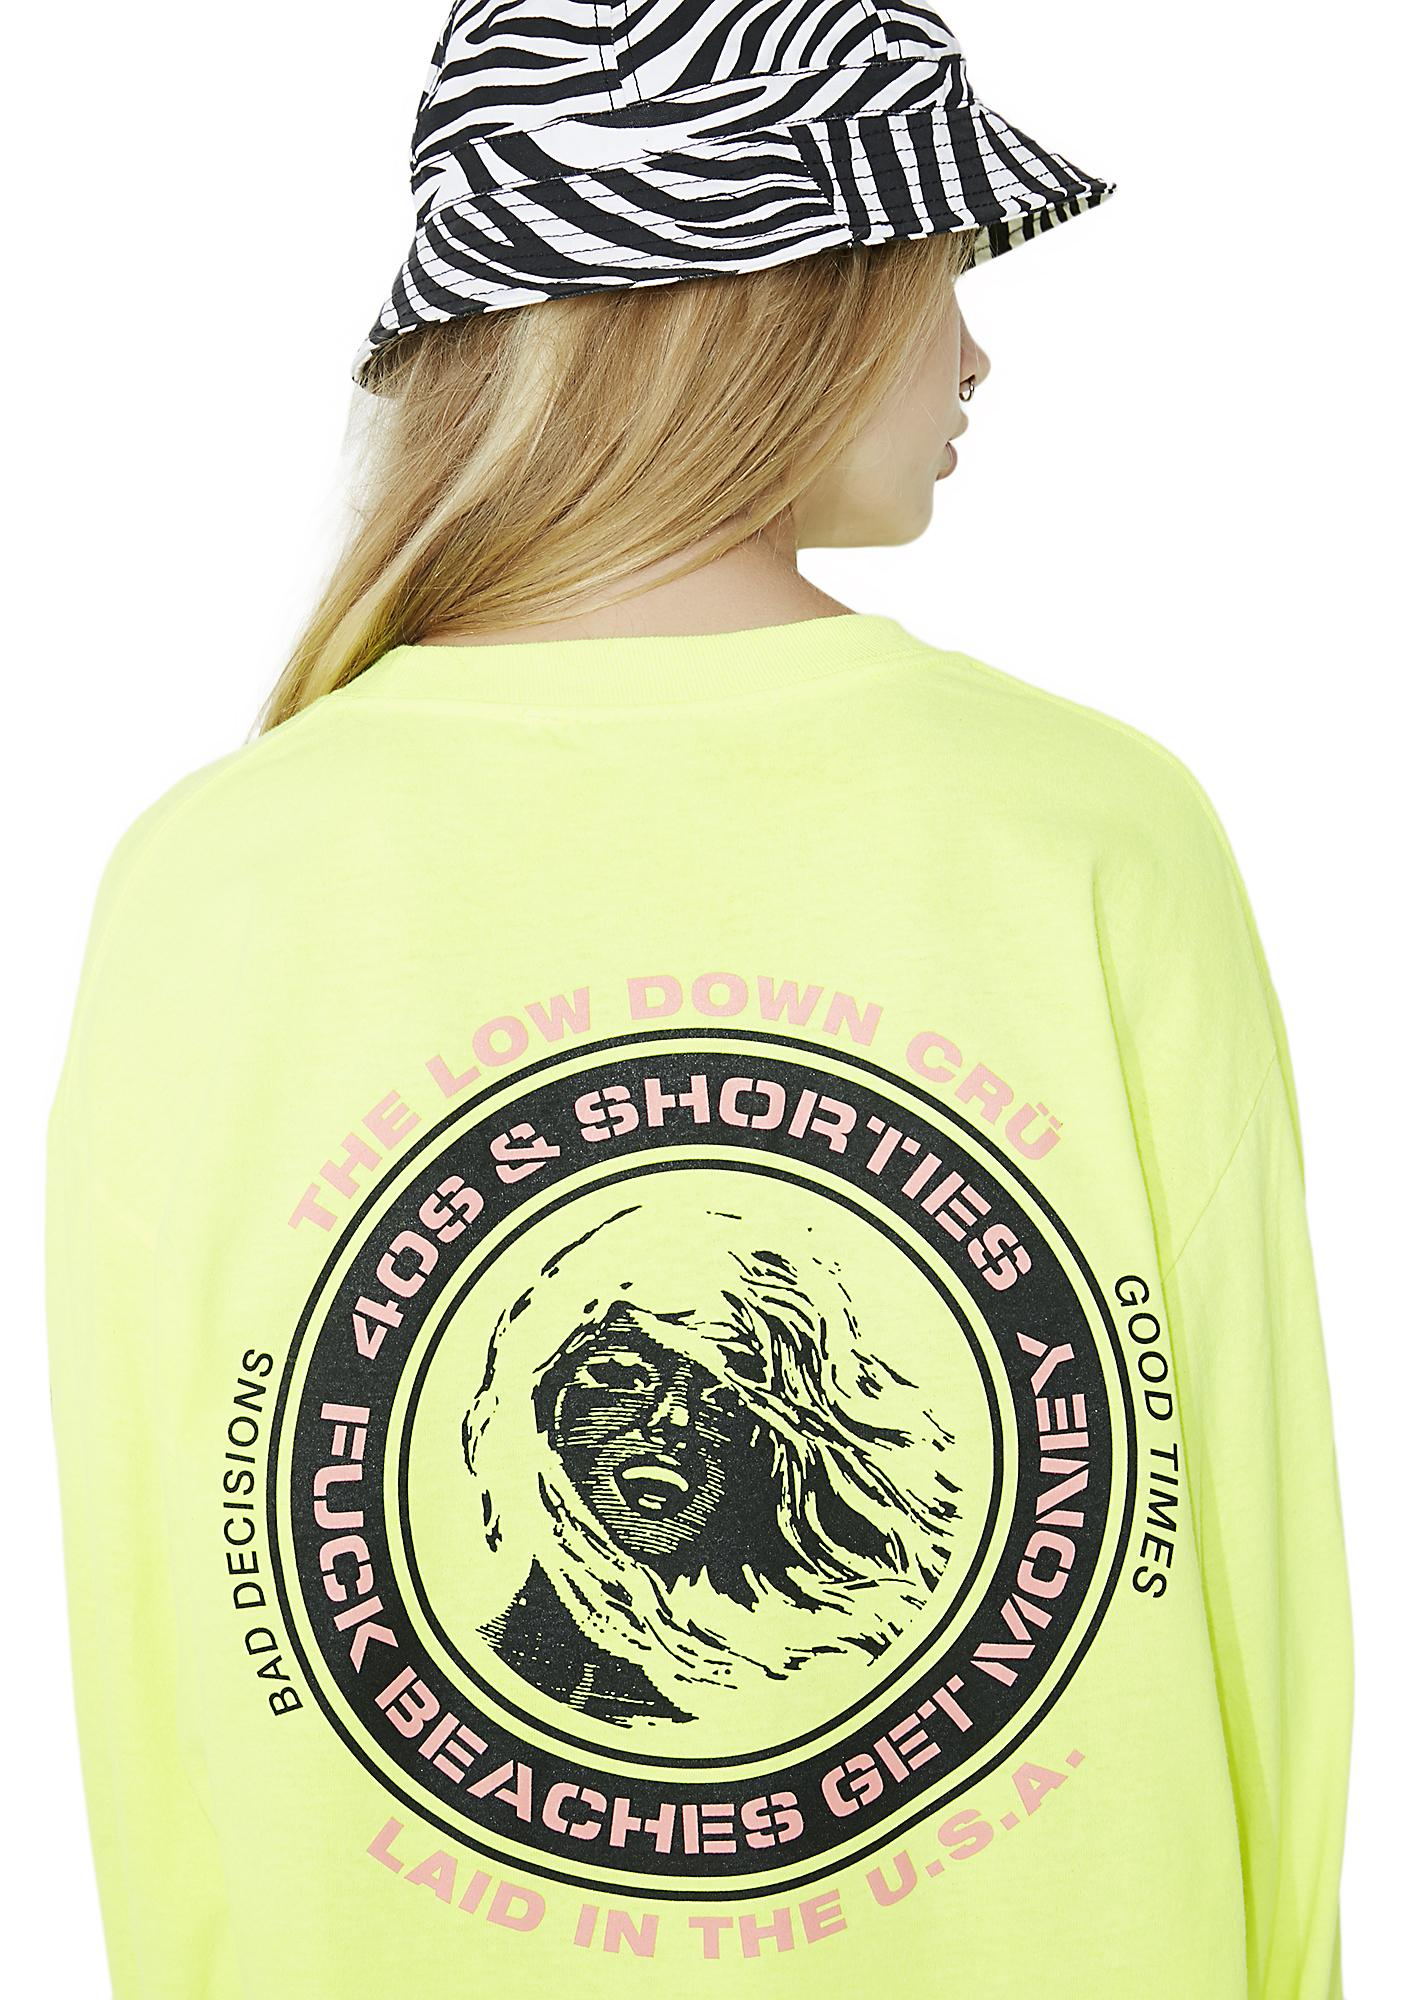 40s & Shorties F Beaches Long Sleeve Tee